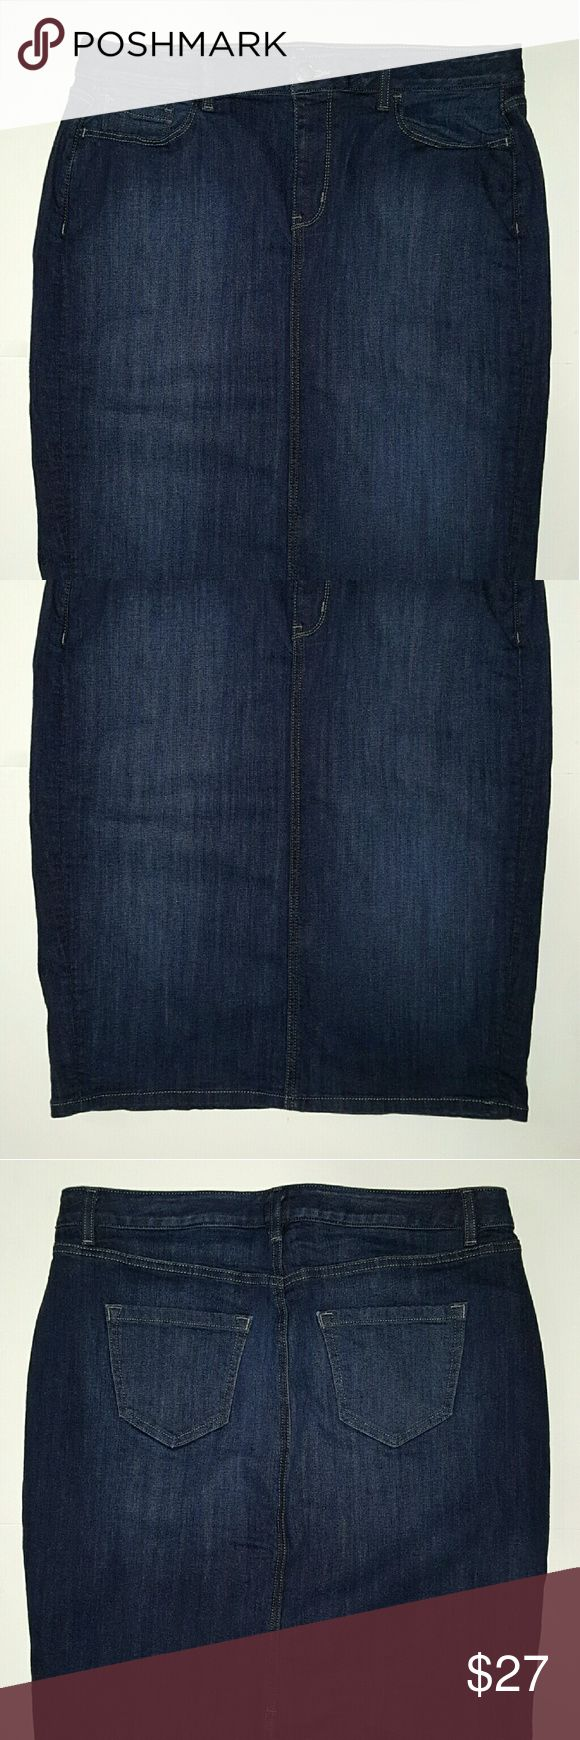 Lane Bryant Jean Skirt size 16 Woman's Pre-owned Lane Bryant Jean Skirt.  Size: 16  Color: Blue  Condition: Good Condition, No Visible Flaws.  Measurements:  Waist: approx. 36 inches.  Length: approx. 26.5 inches. Lane Bryant Skirts